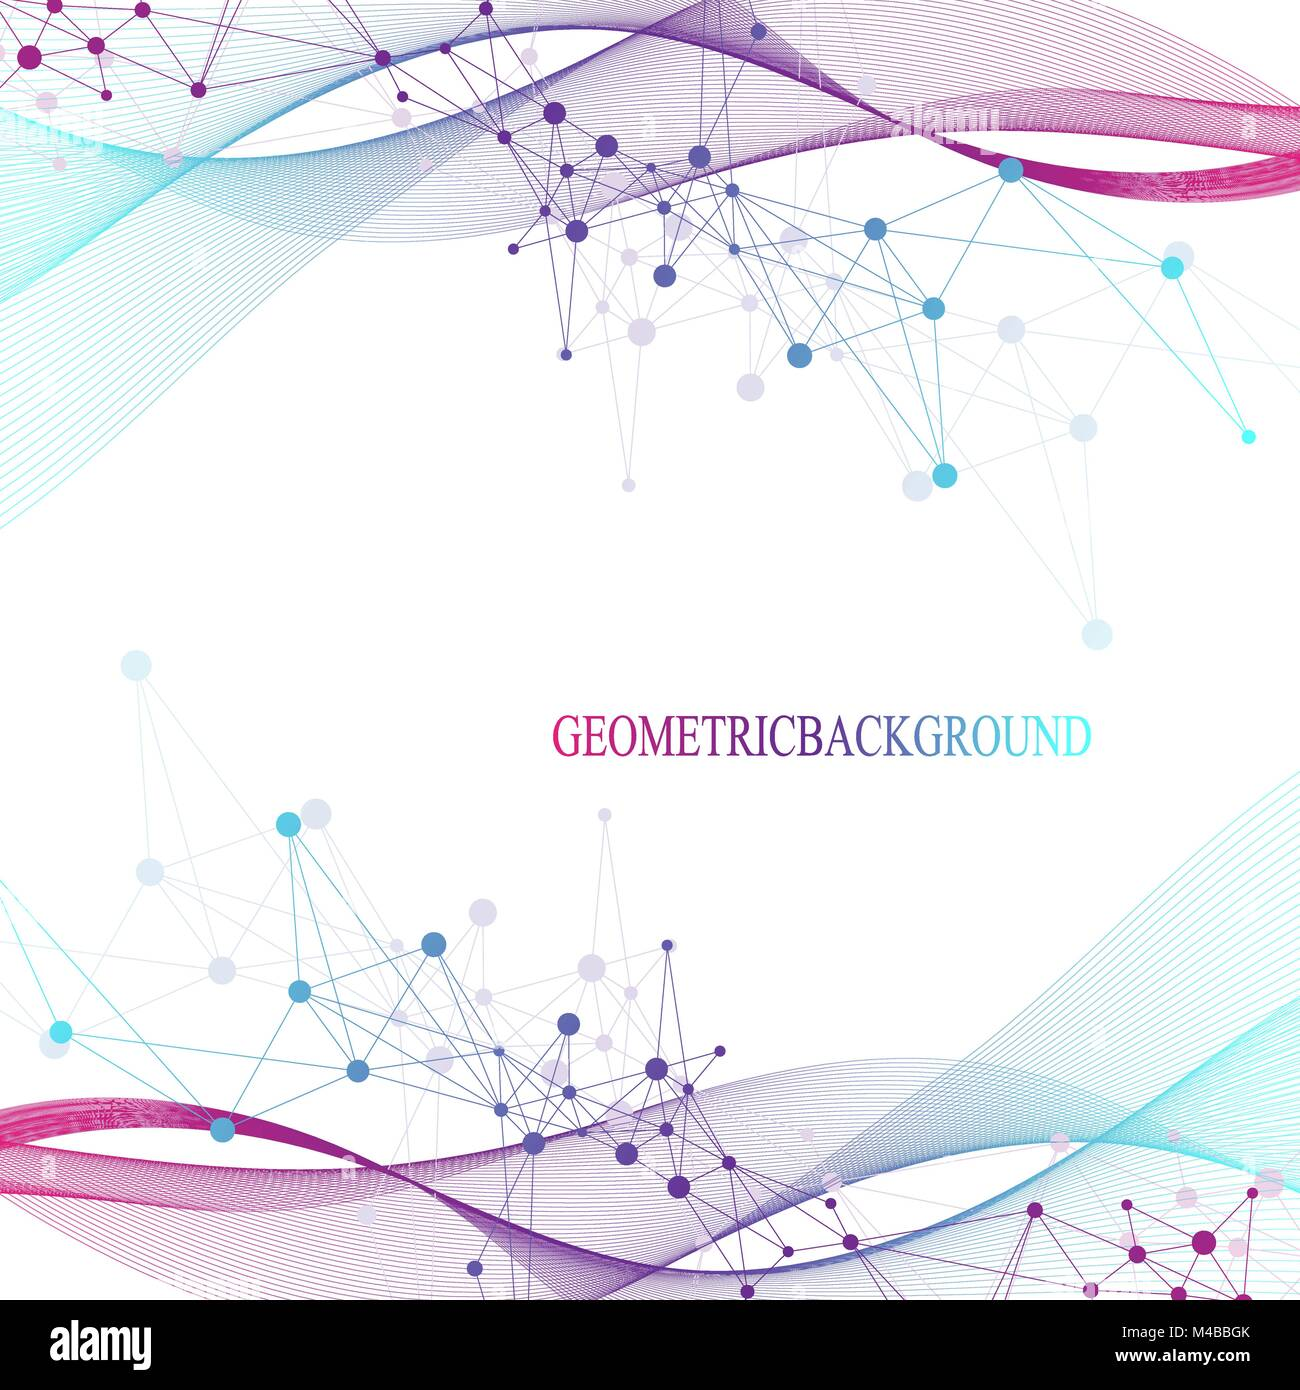 Structure molecule and communication dna atom neurons scientific structure molecule and communication dna atom neurons scientific molecule background for medicine science technology chemistry vector illustration ccuart